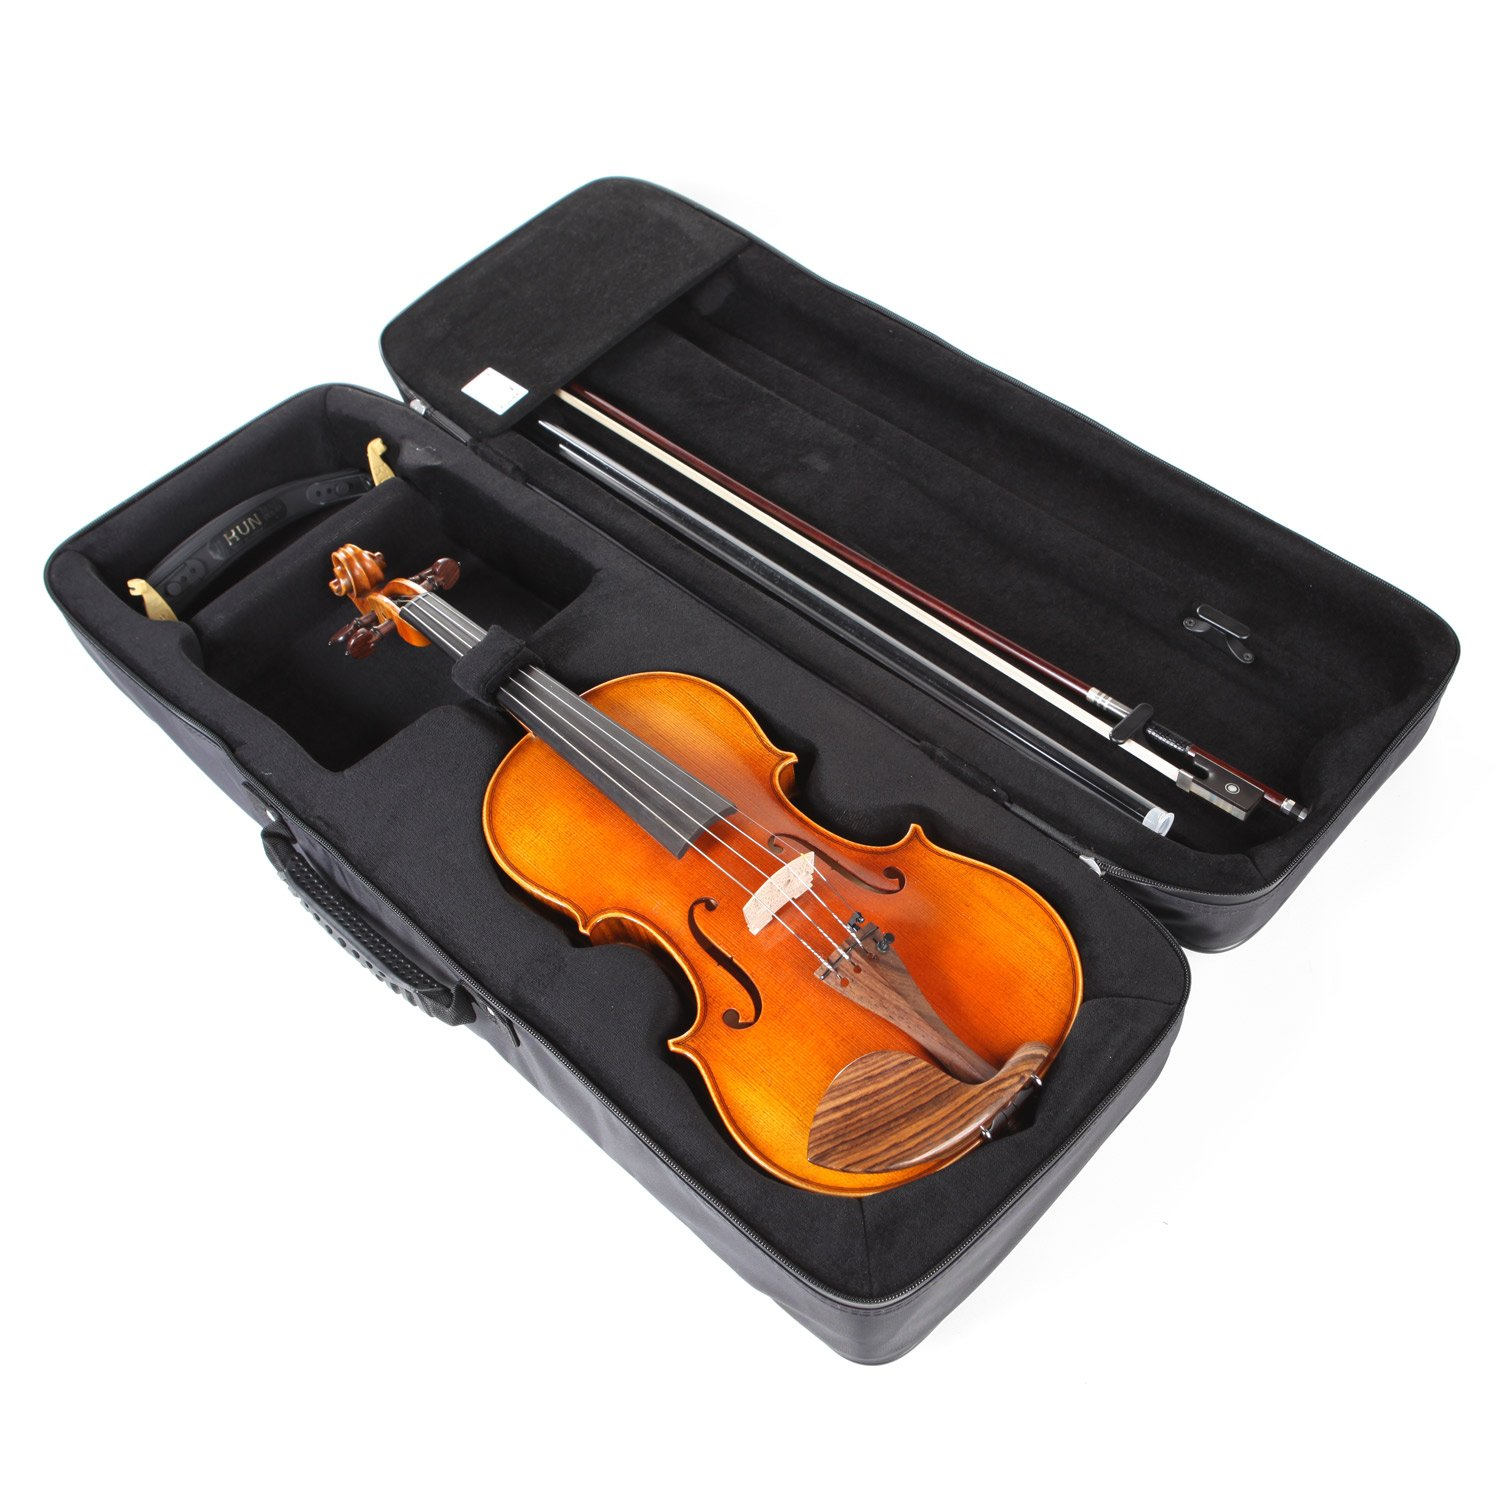 Bam Performance Soft - Estuche para violín 4/4, color negro ...